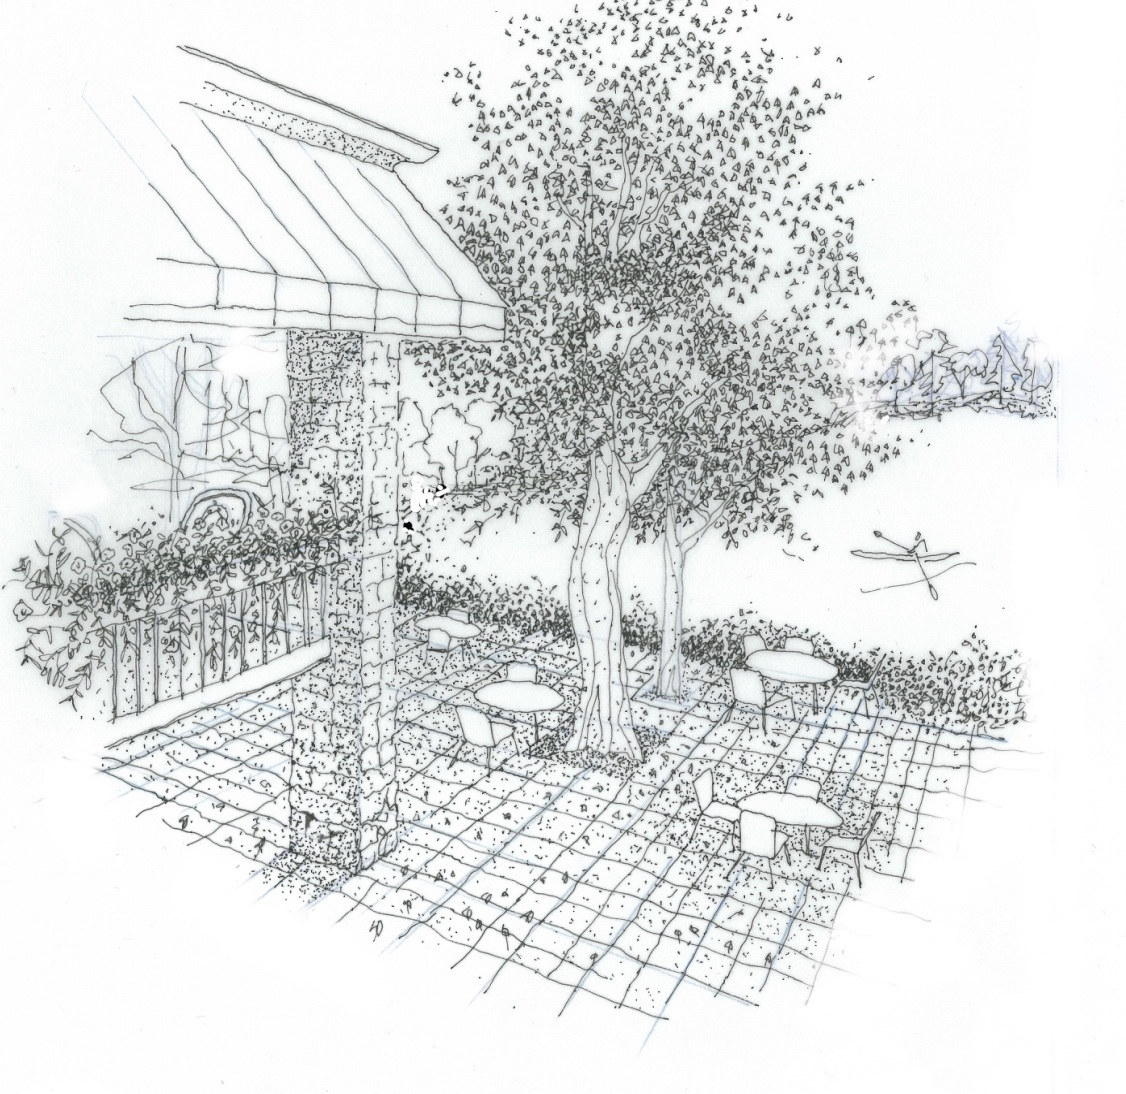 The sketch shows the porch where people must have dined while looking over the pond and patio diners below at ground level. The canopy and flower boxes decorated the porch.